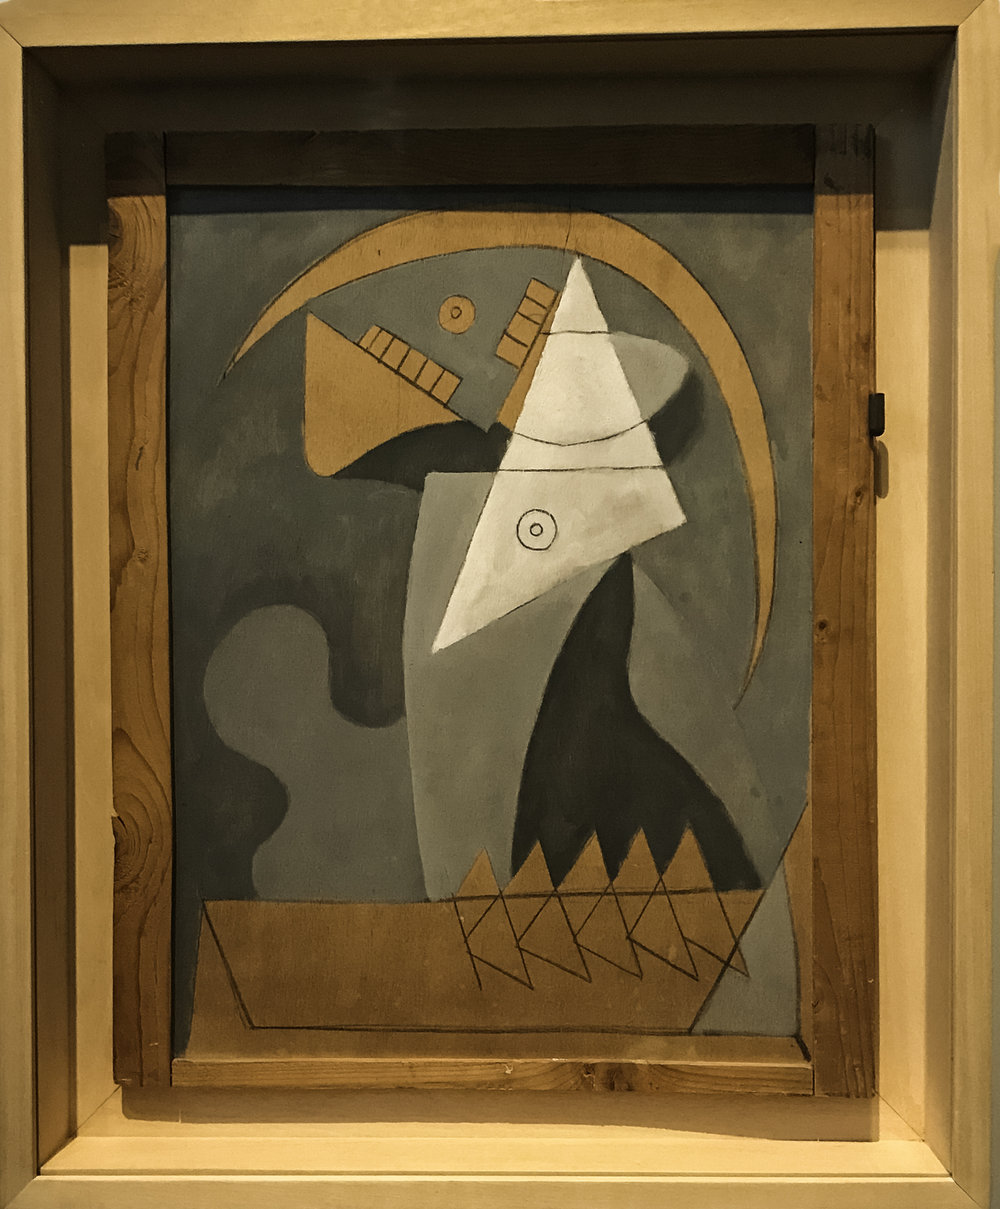 "Figure,   oil and charcoal on plywood closet door, 1930. ""Women who provoke and perplex are the subject of many of Picasso's visions around this time.  He had turned against his wife, Olga Khokhlova, while nurturing an affair with a younger woman, Marie-Thérèse Walter.  Many of his female figures become flat, geometric and puzzle pieces with no depth and an ominous air.  This is in extreme contrast to the voluptuous grace accorded to depictions of Marie-Thérèse."""